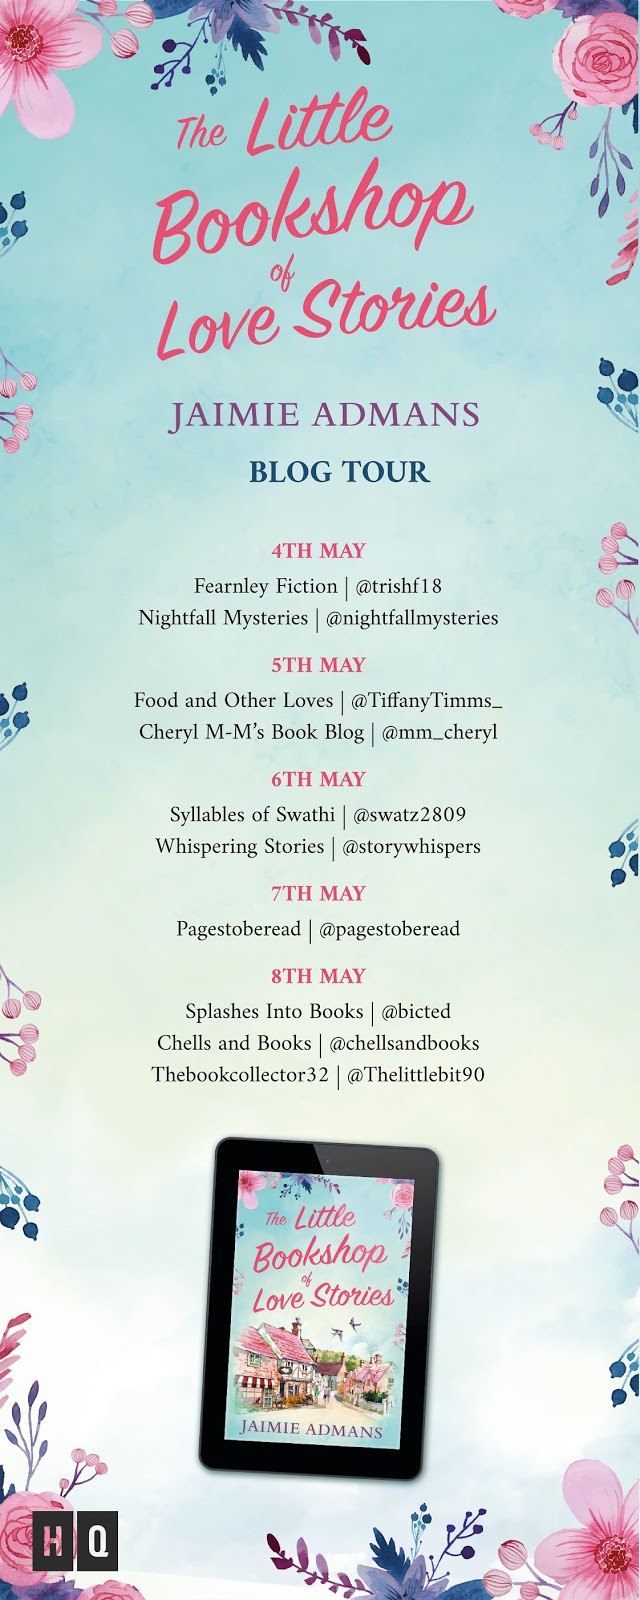 The Little Bookshop Of Love Stories by Jaimie Admans book tour poster